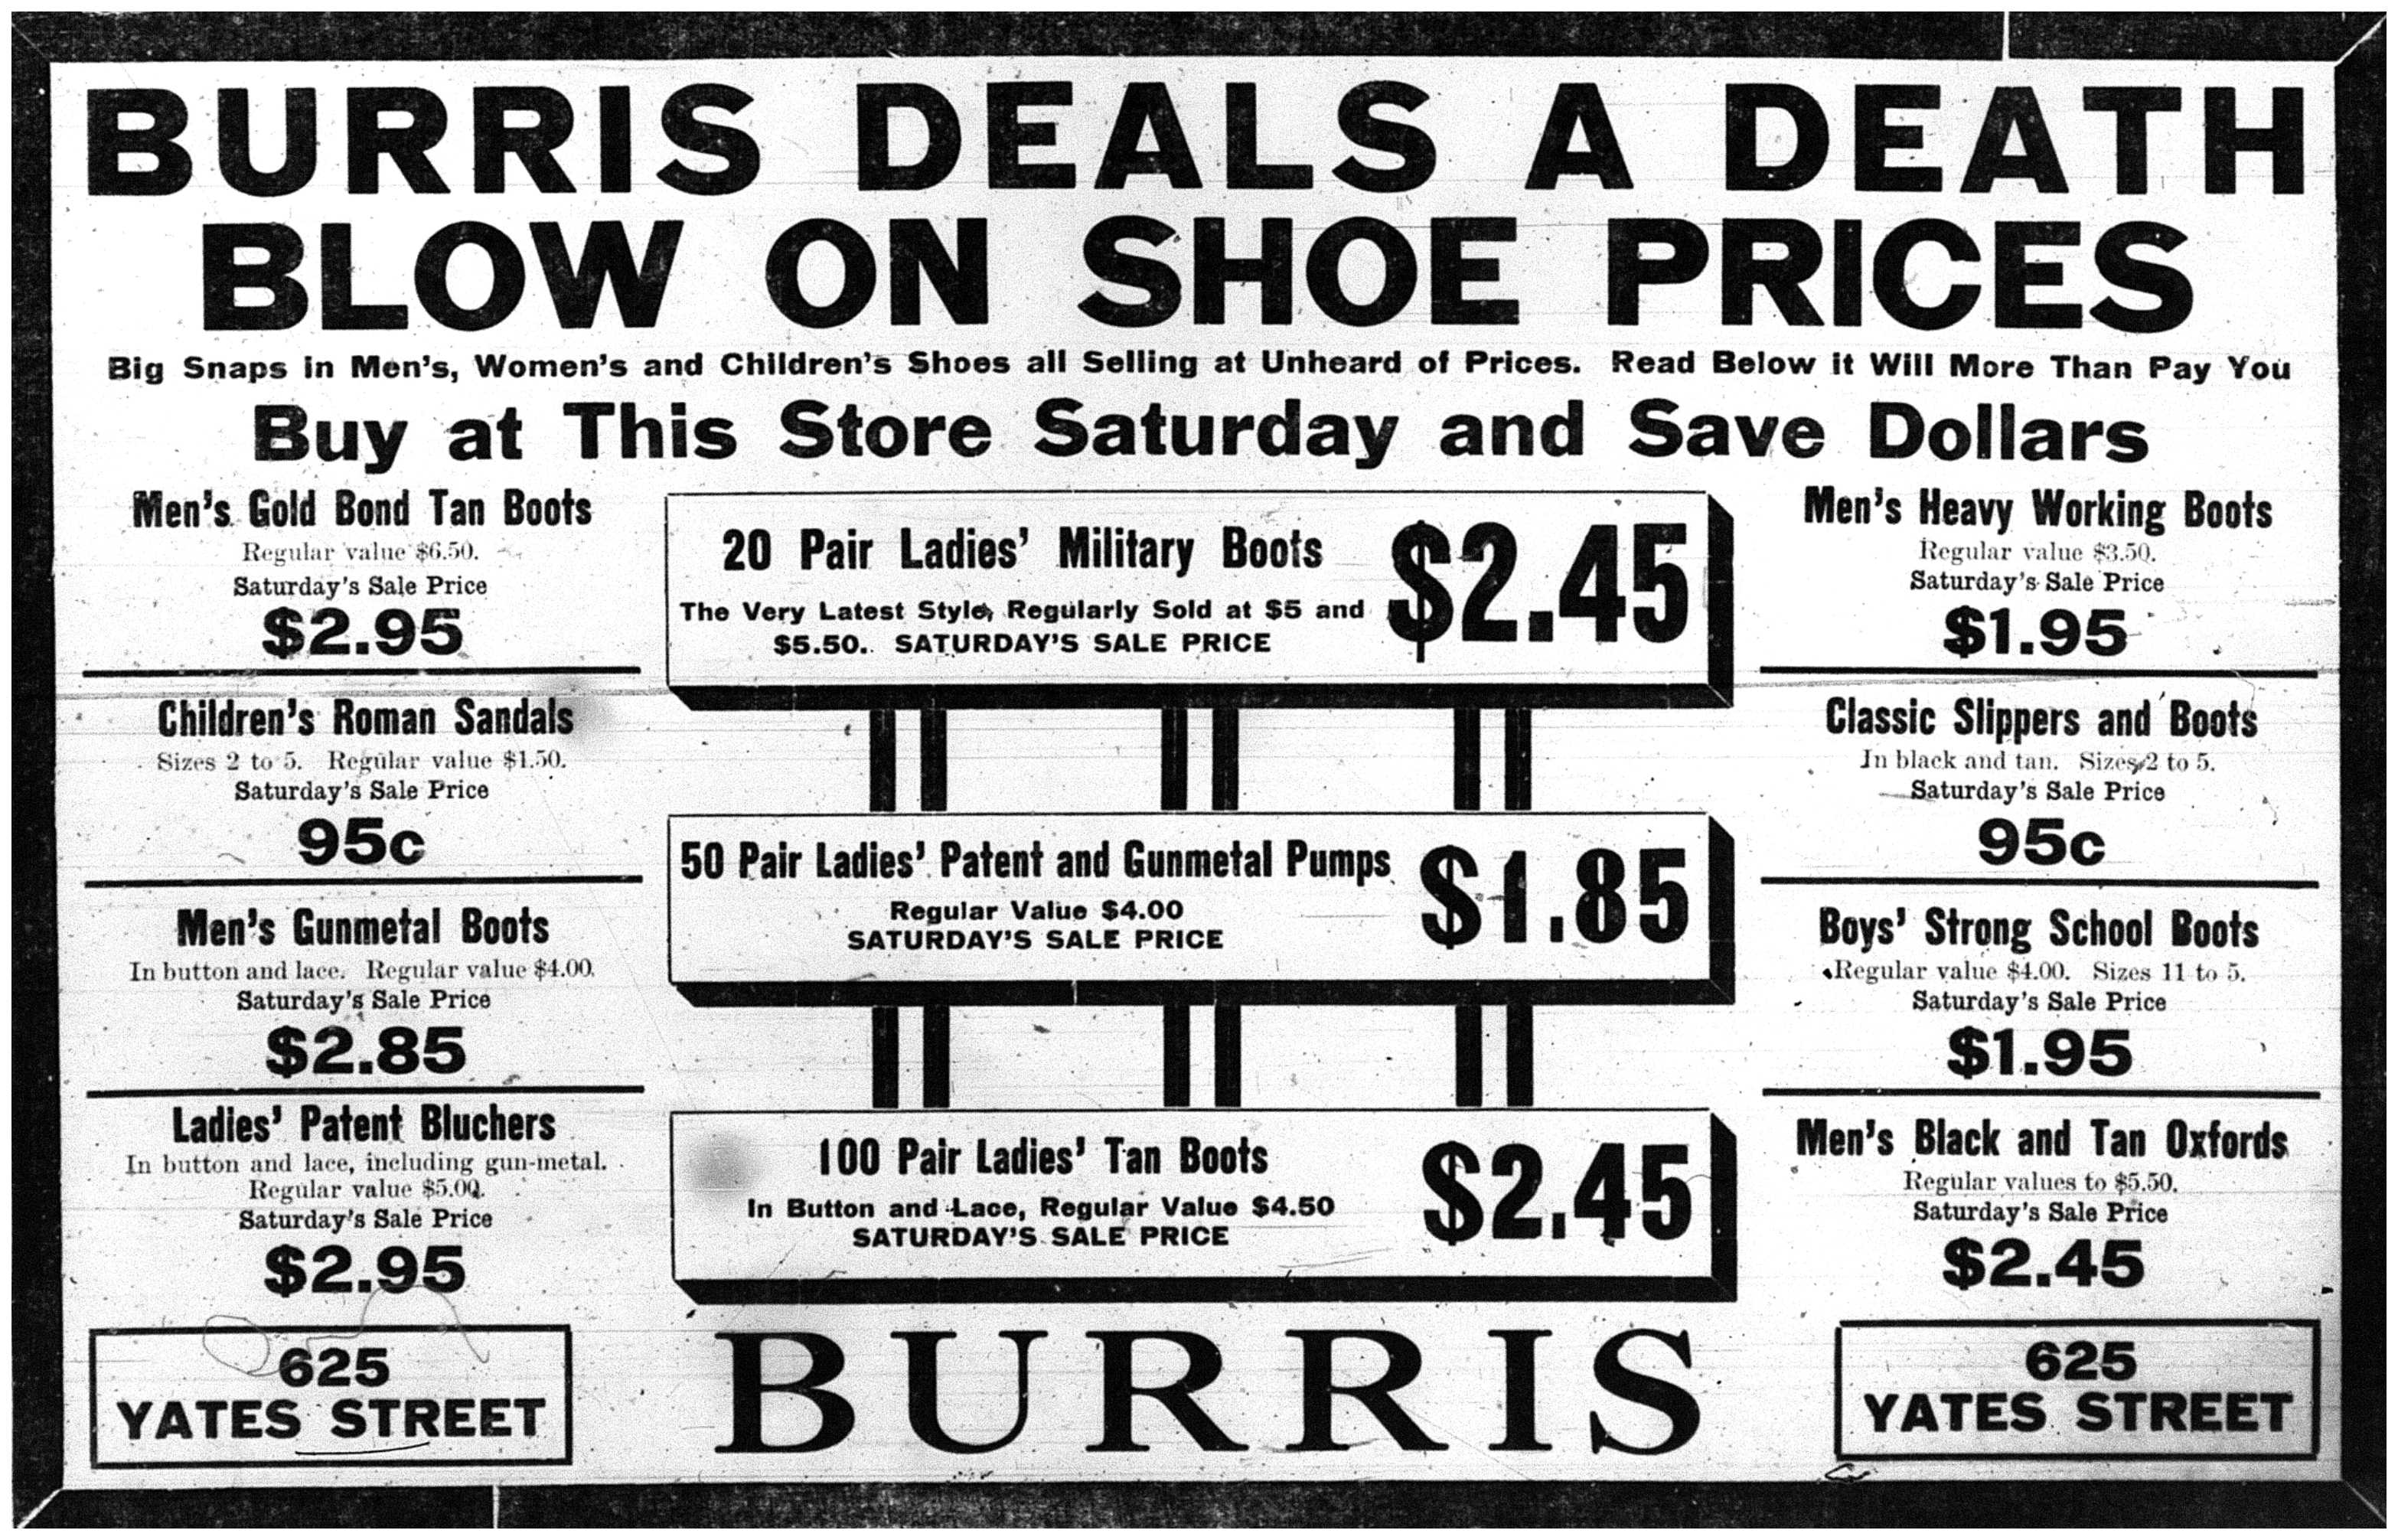 Death Blow on Shoes, Ad